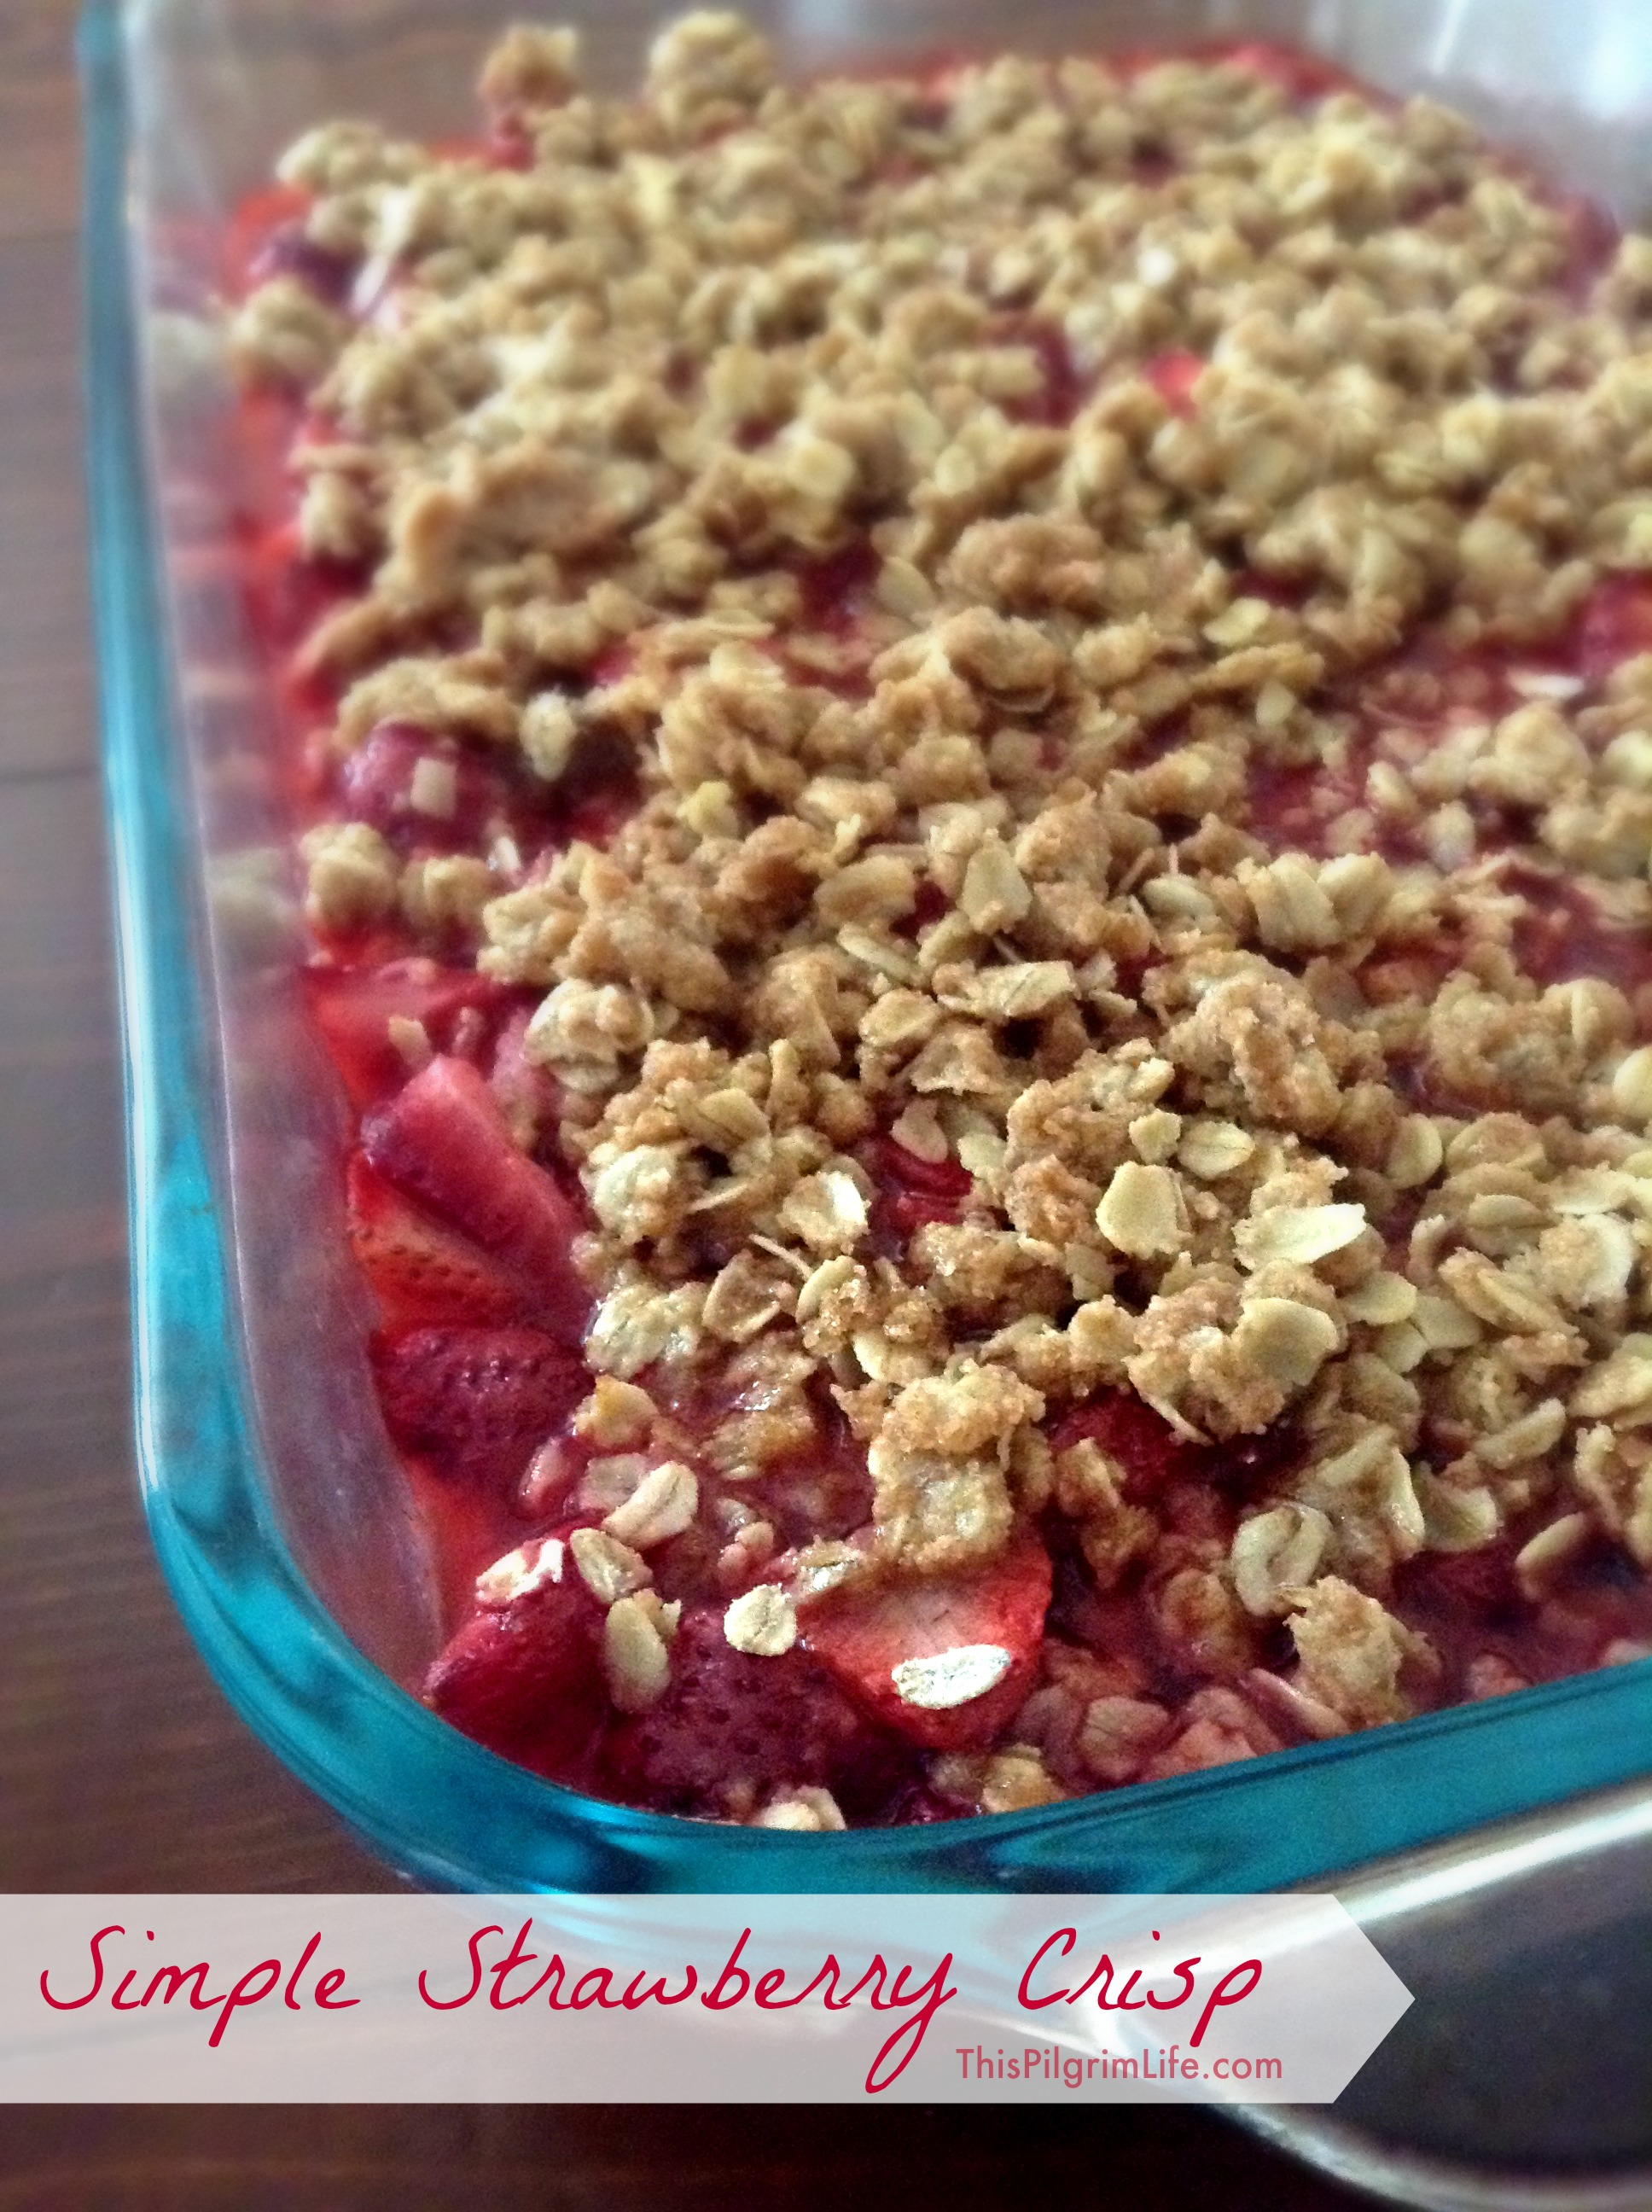 Simple strawberry crisp made with fresh strawberries and all real ingredients.